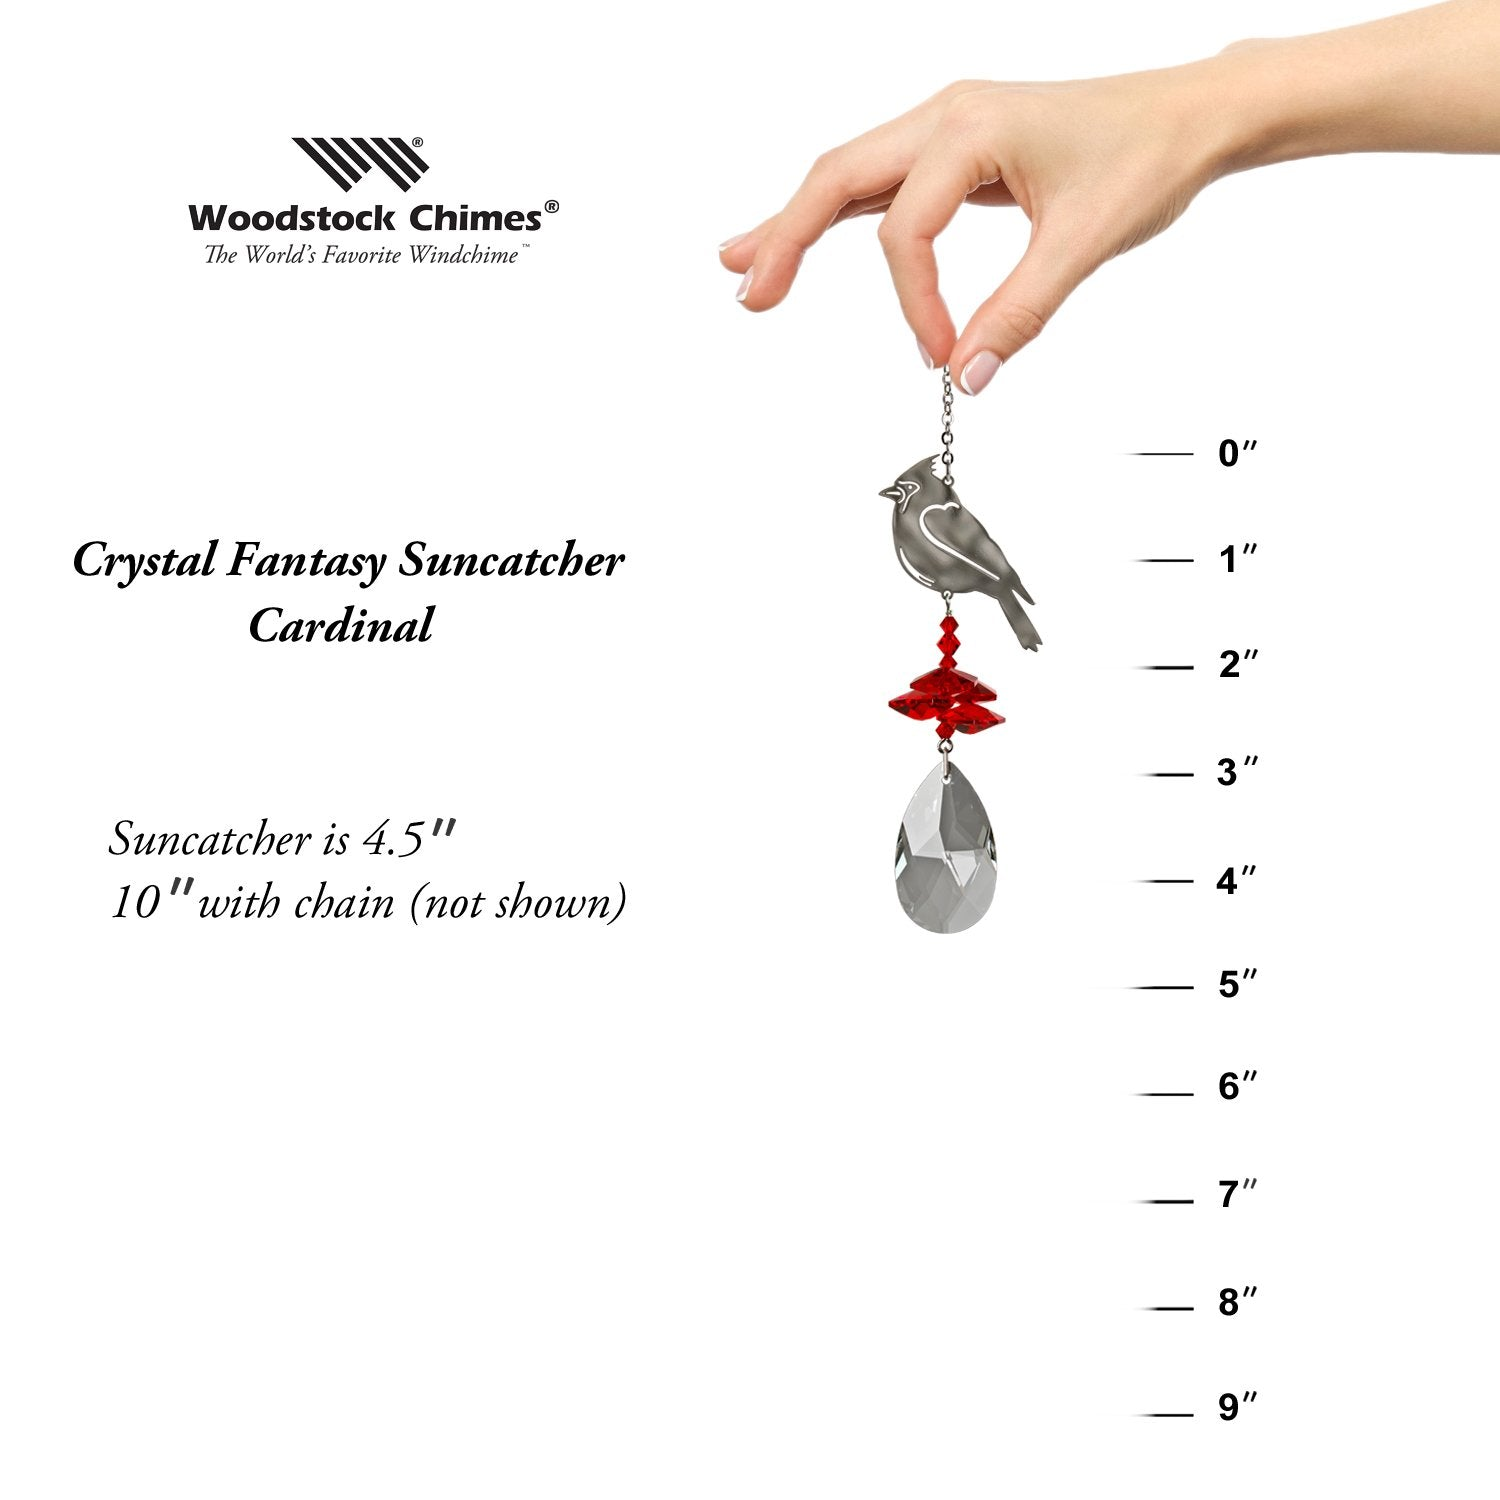 Crystal Fantasy Suncatcher - Cardinal proportion image